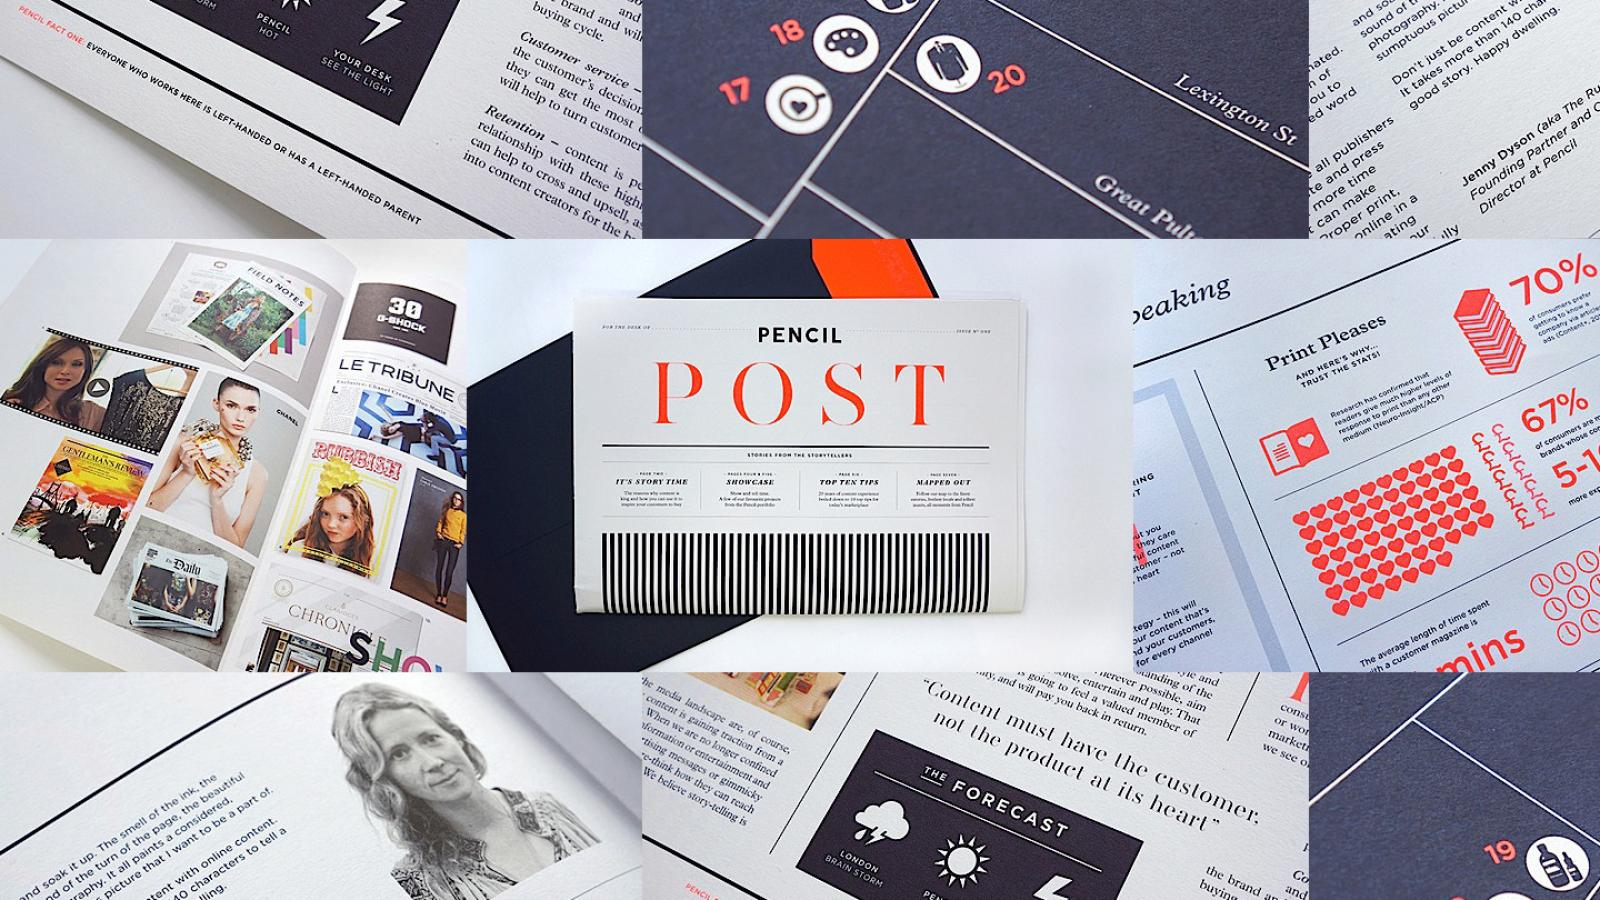 Editorial Design Inspiration: Pencil Post